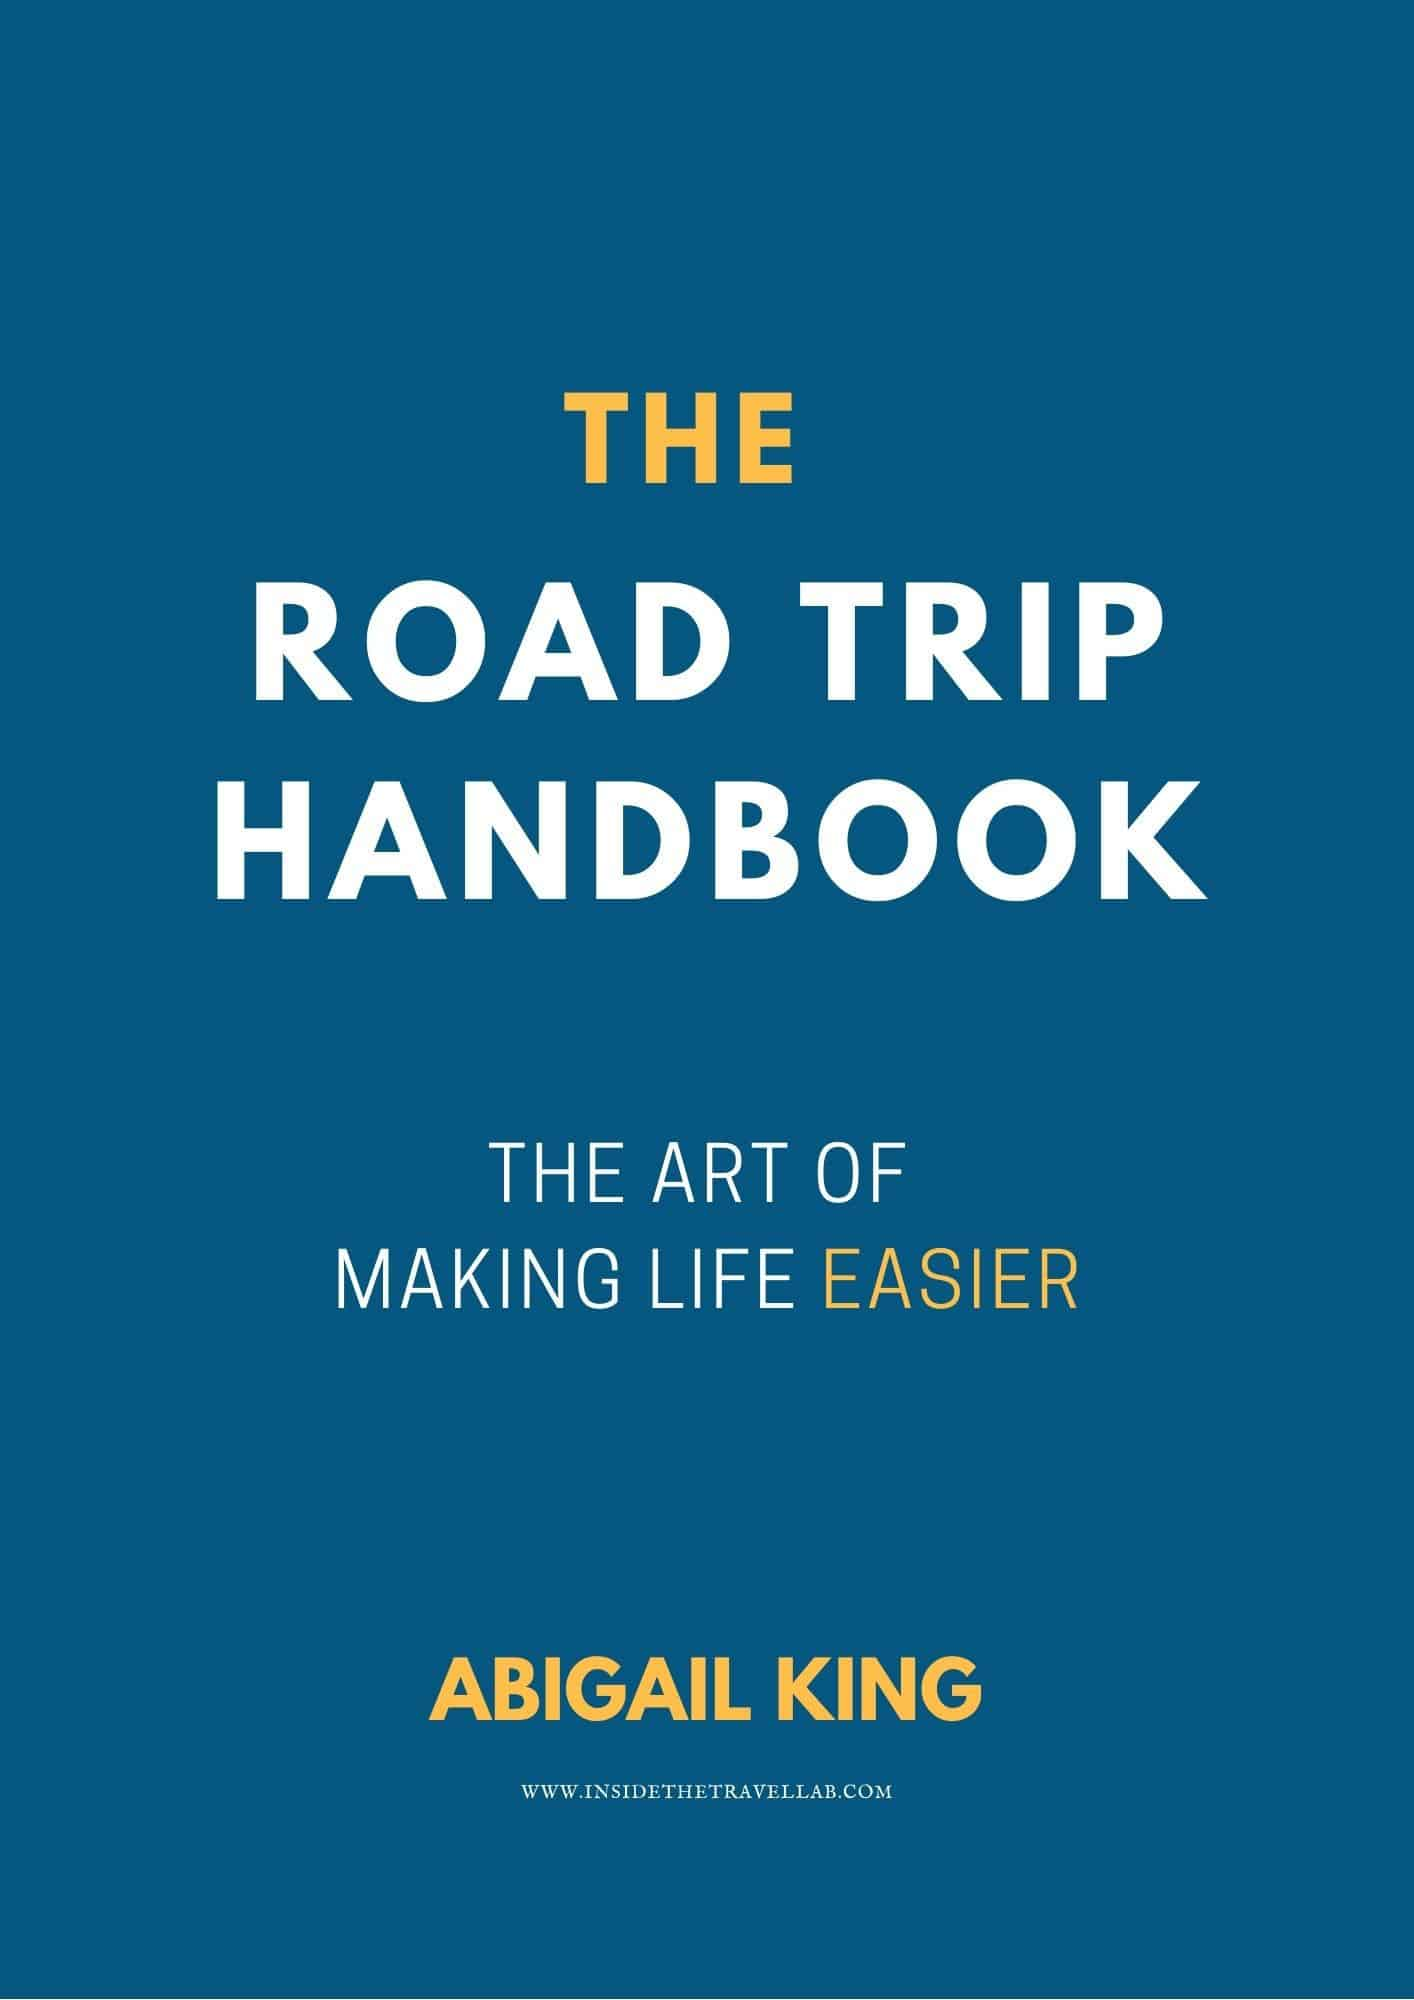 The Road Trip Handbook Cover Image